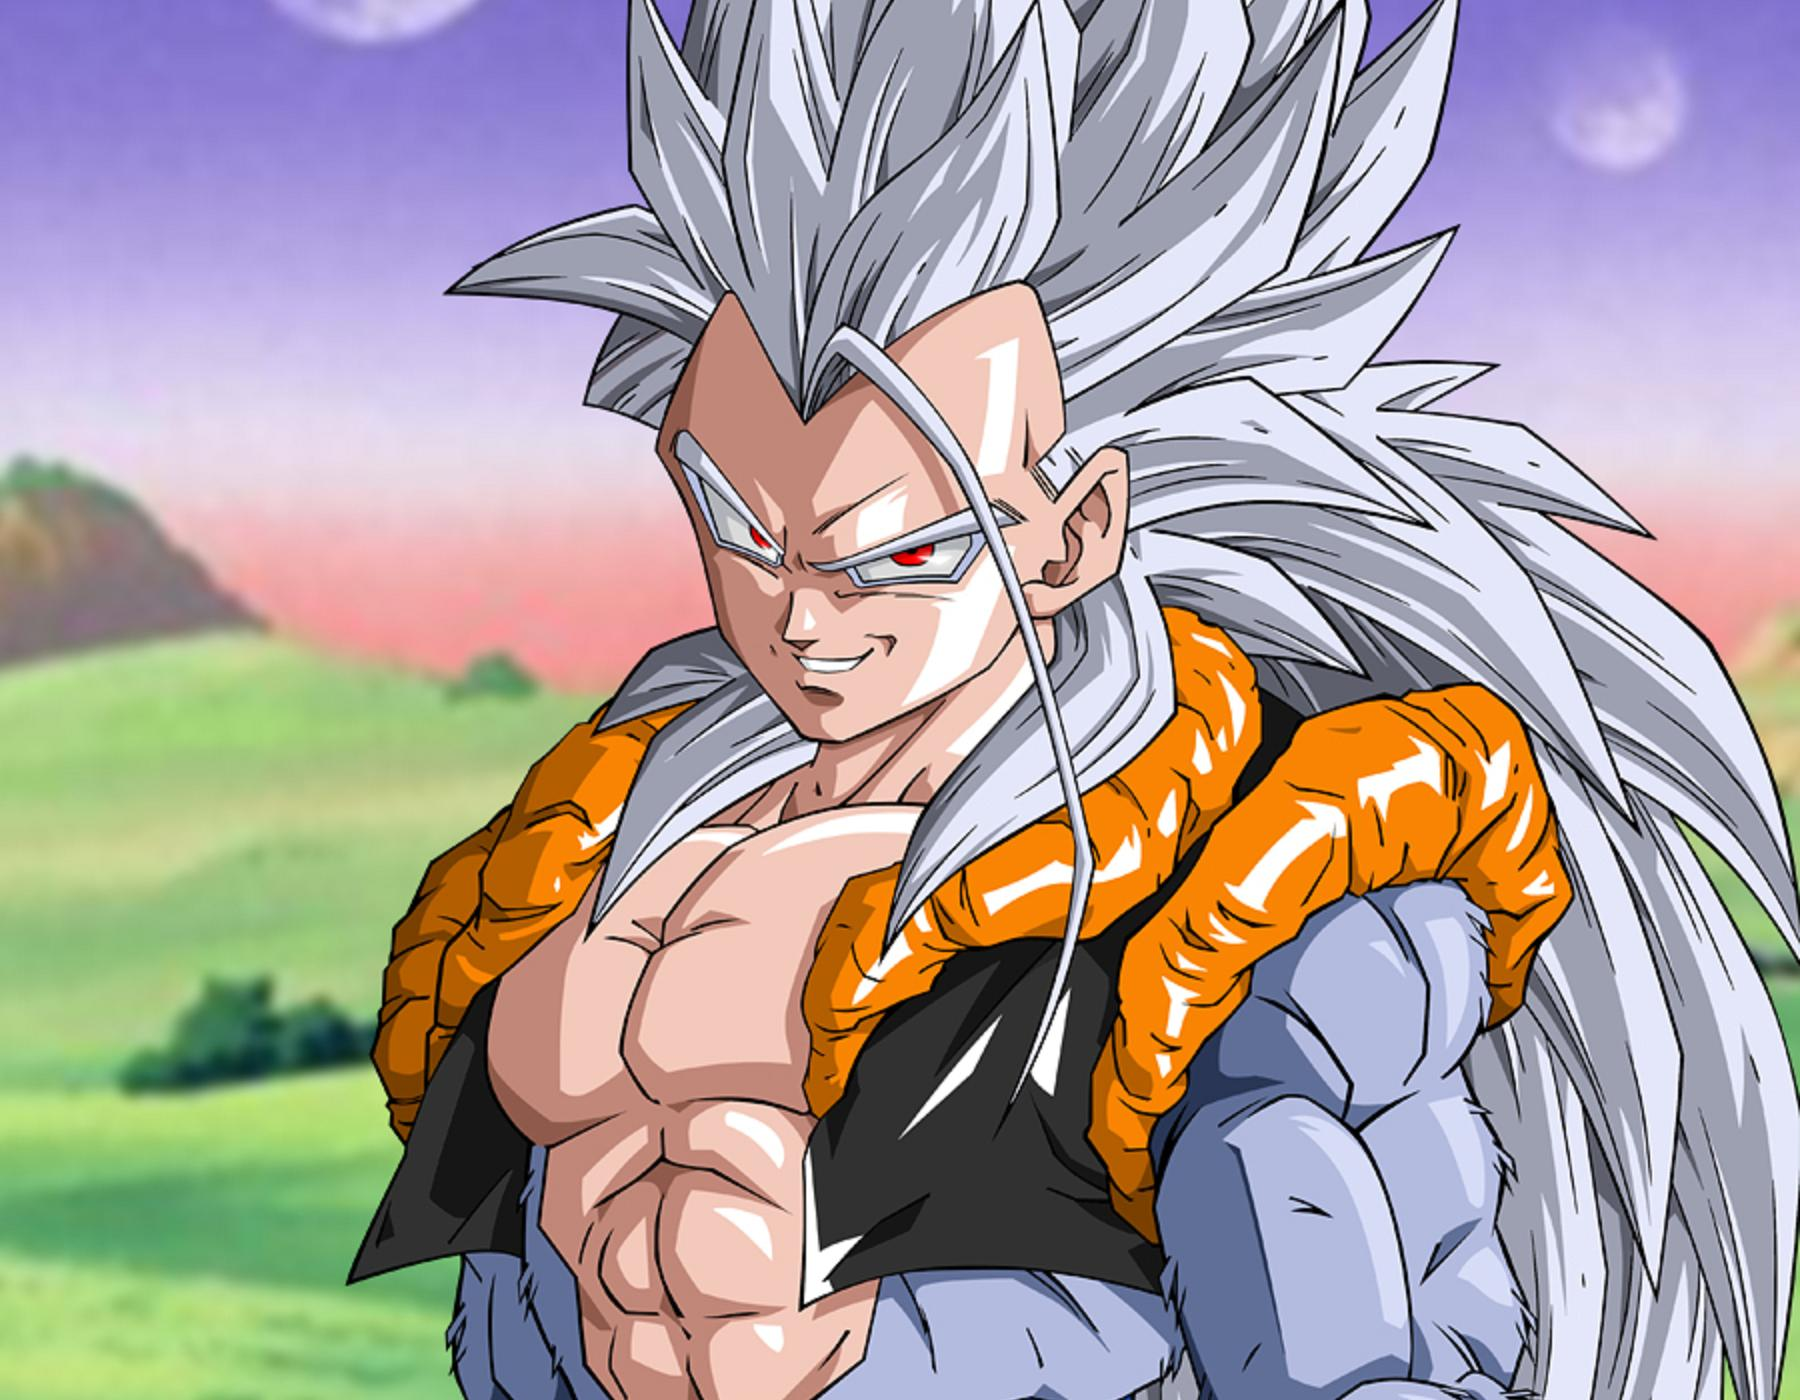 47 Goku Super Saiyan Wallpaper On Wallpapersafari